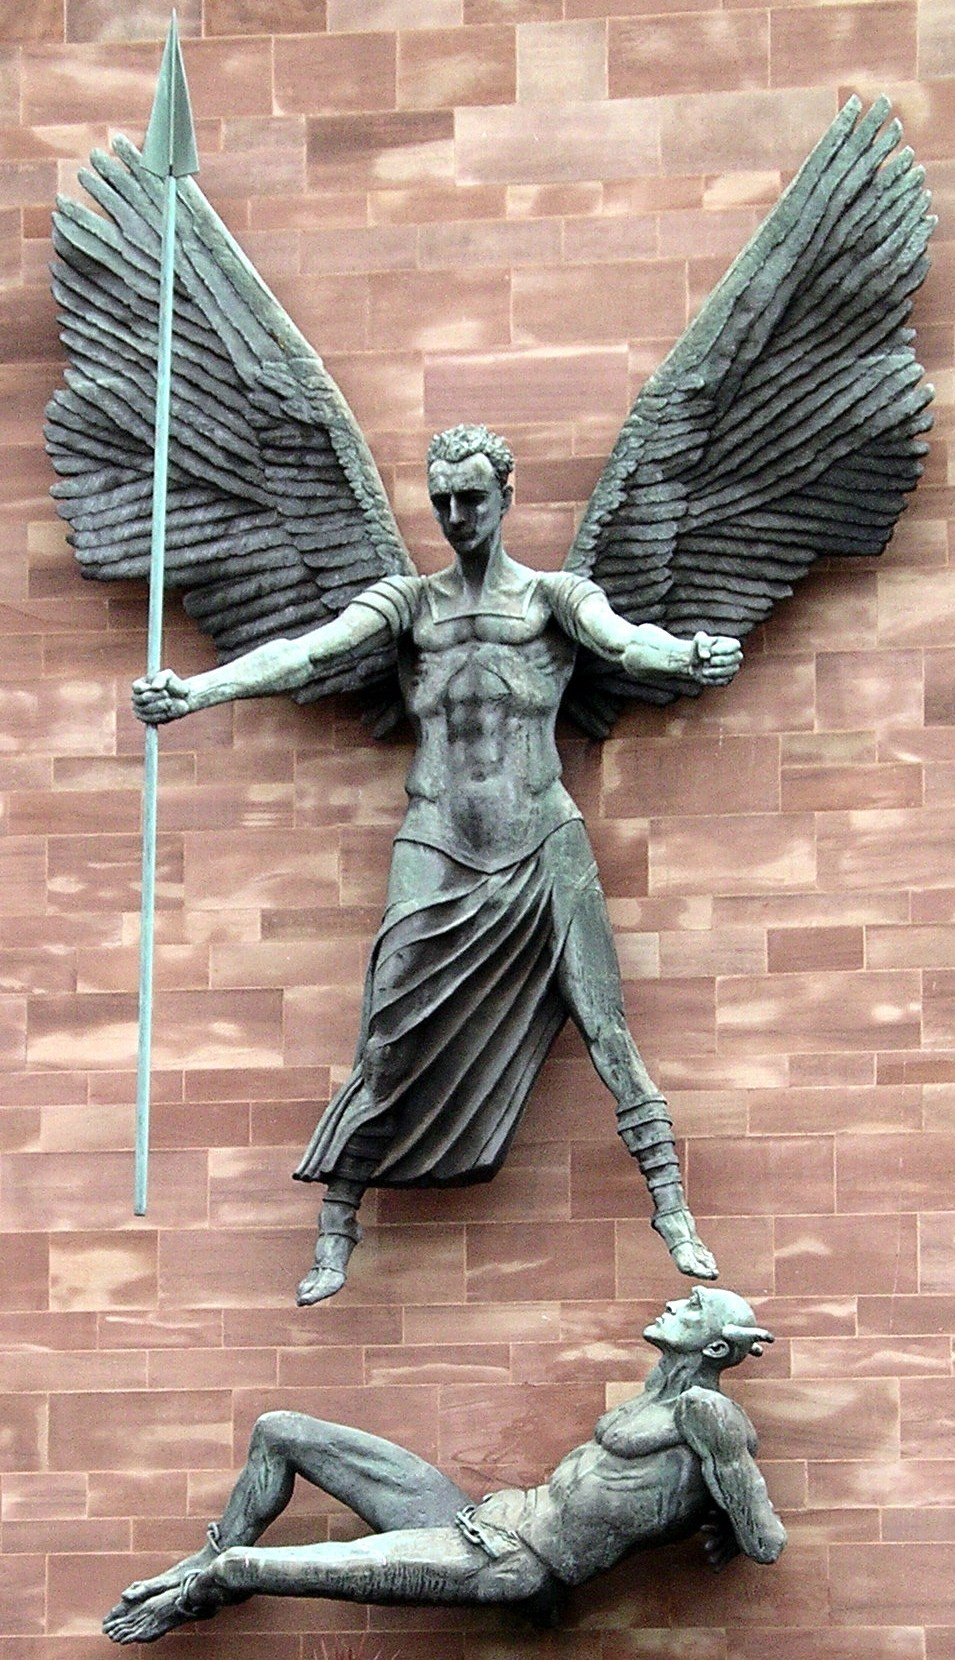 i-28091f43d7e456ad446316924521e207-Michael_and_the_devil_-_coventry_cathedral_14d061.jpg